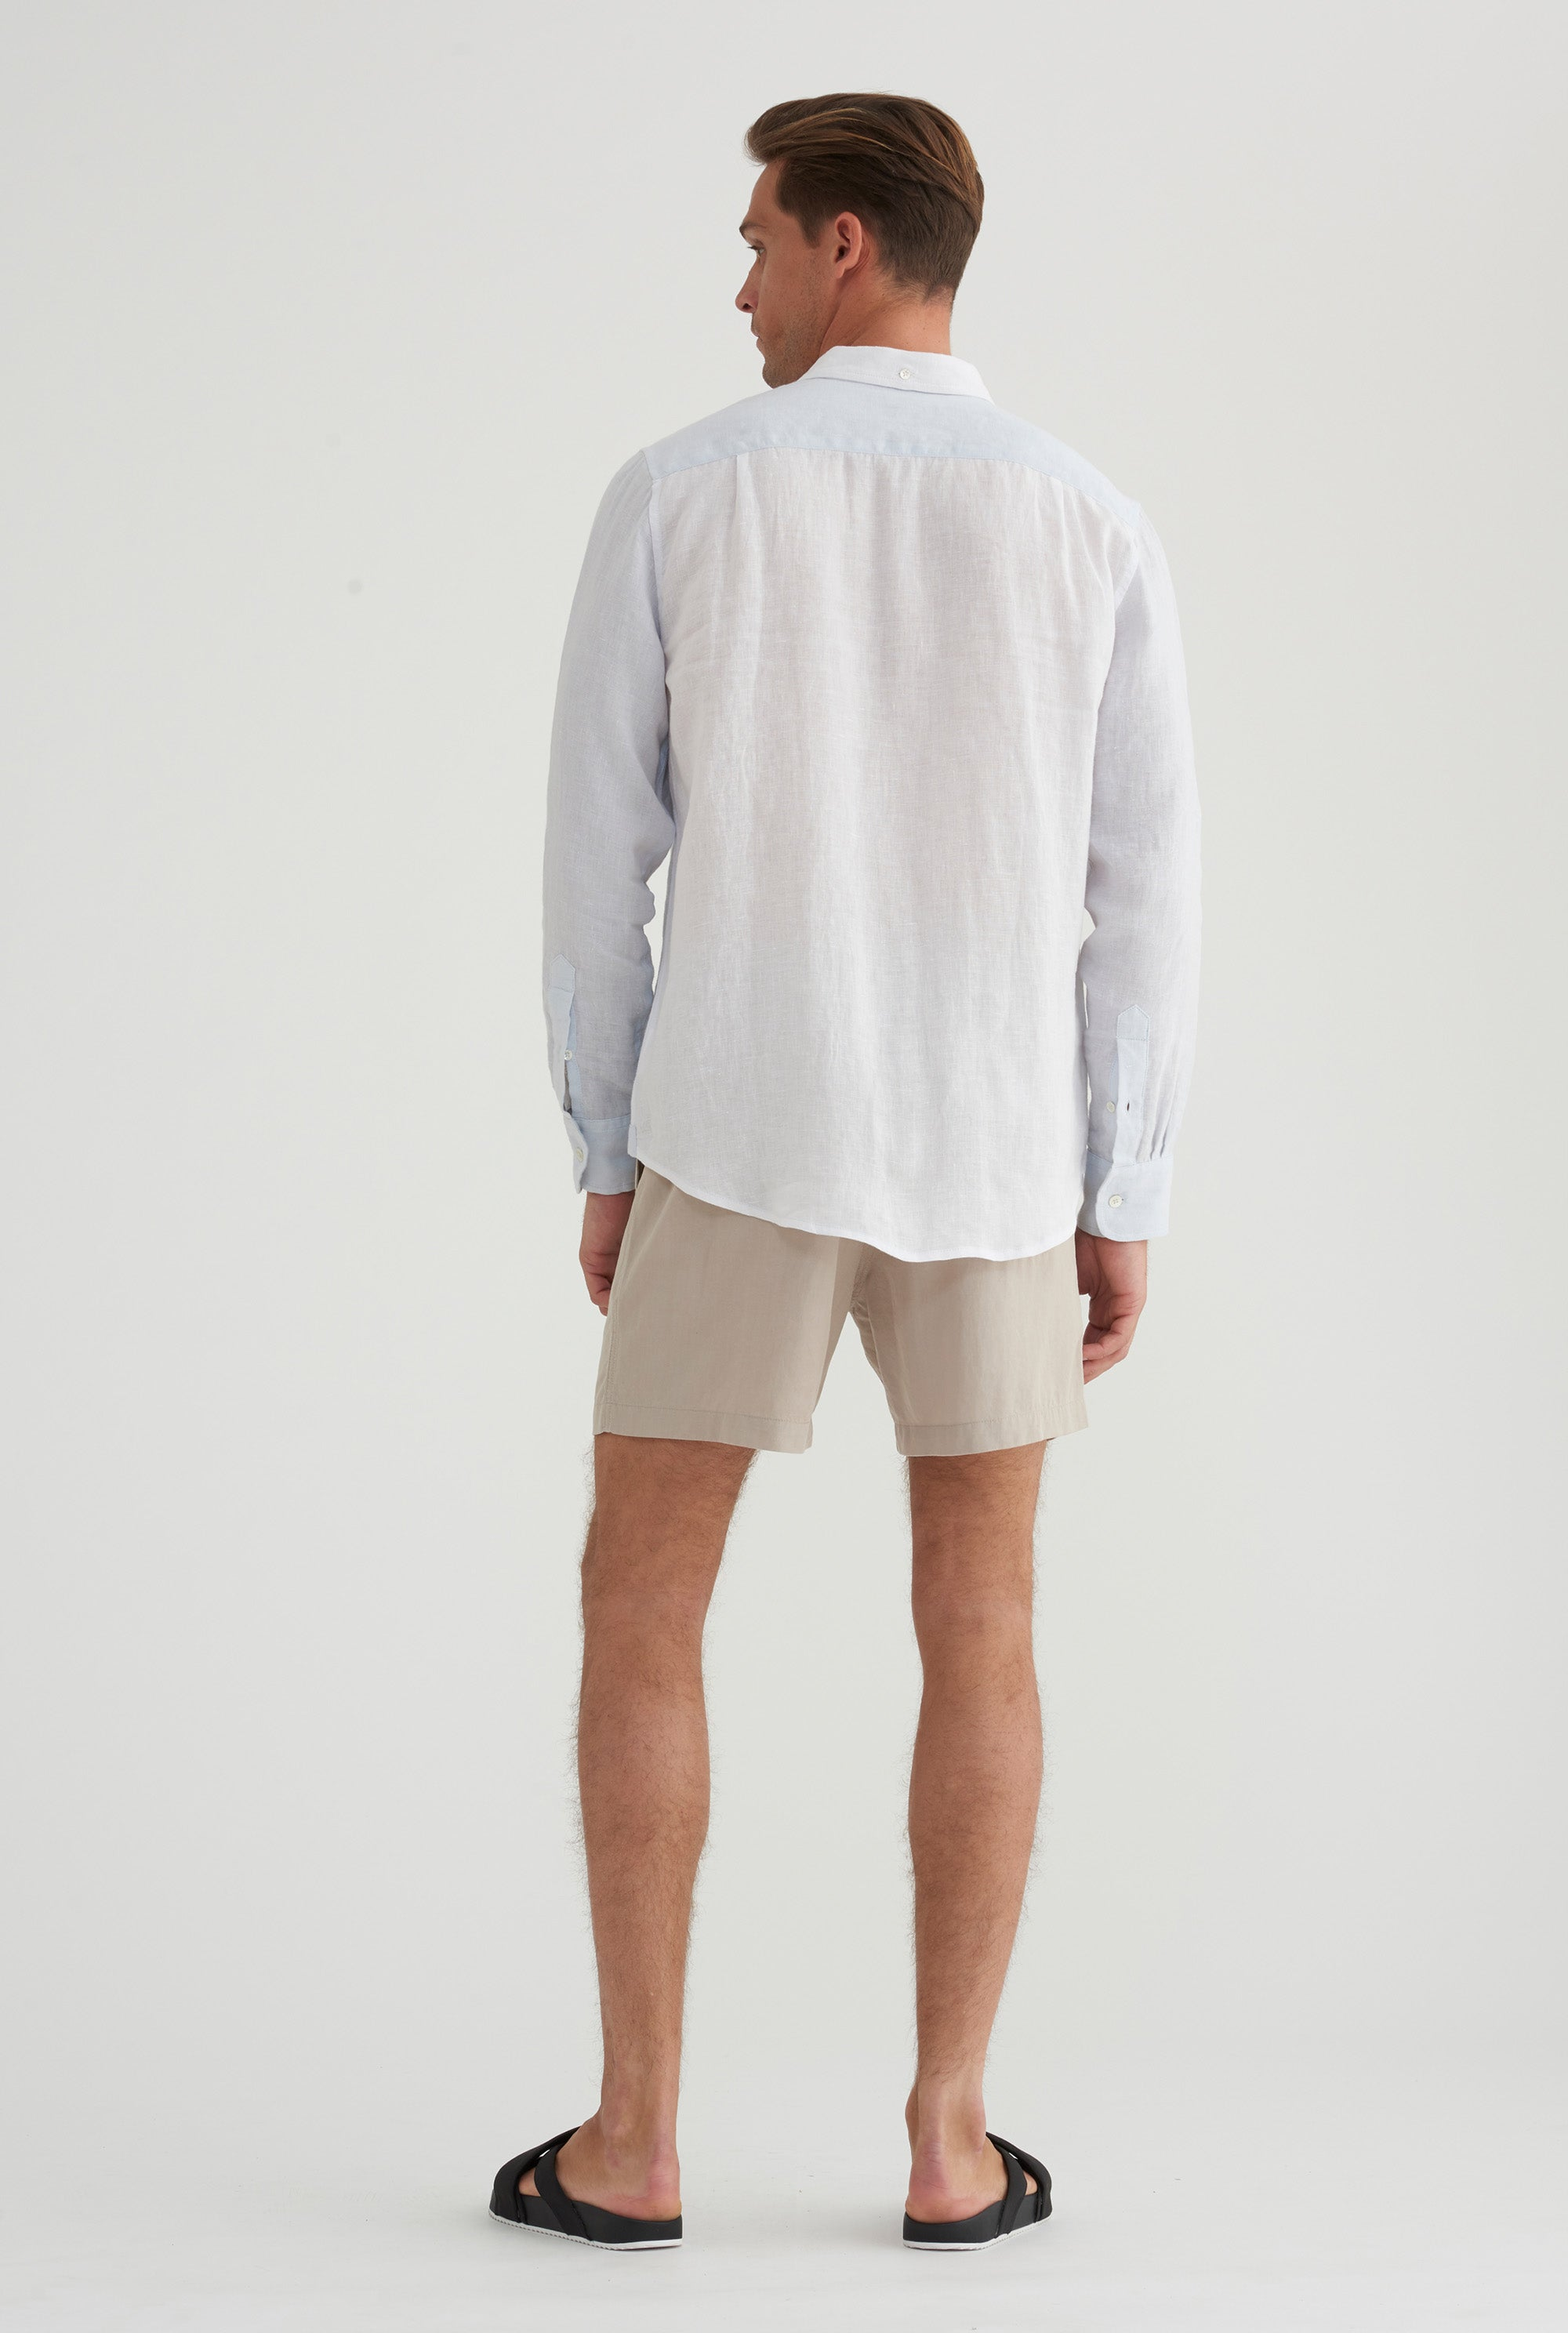 Linen Shirt - Light Blue/White Colour Block